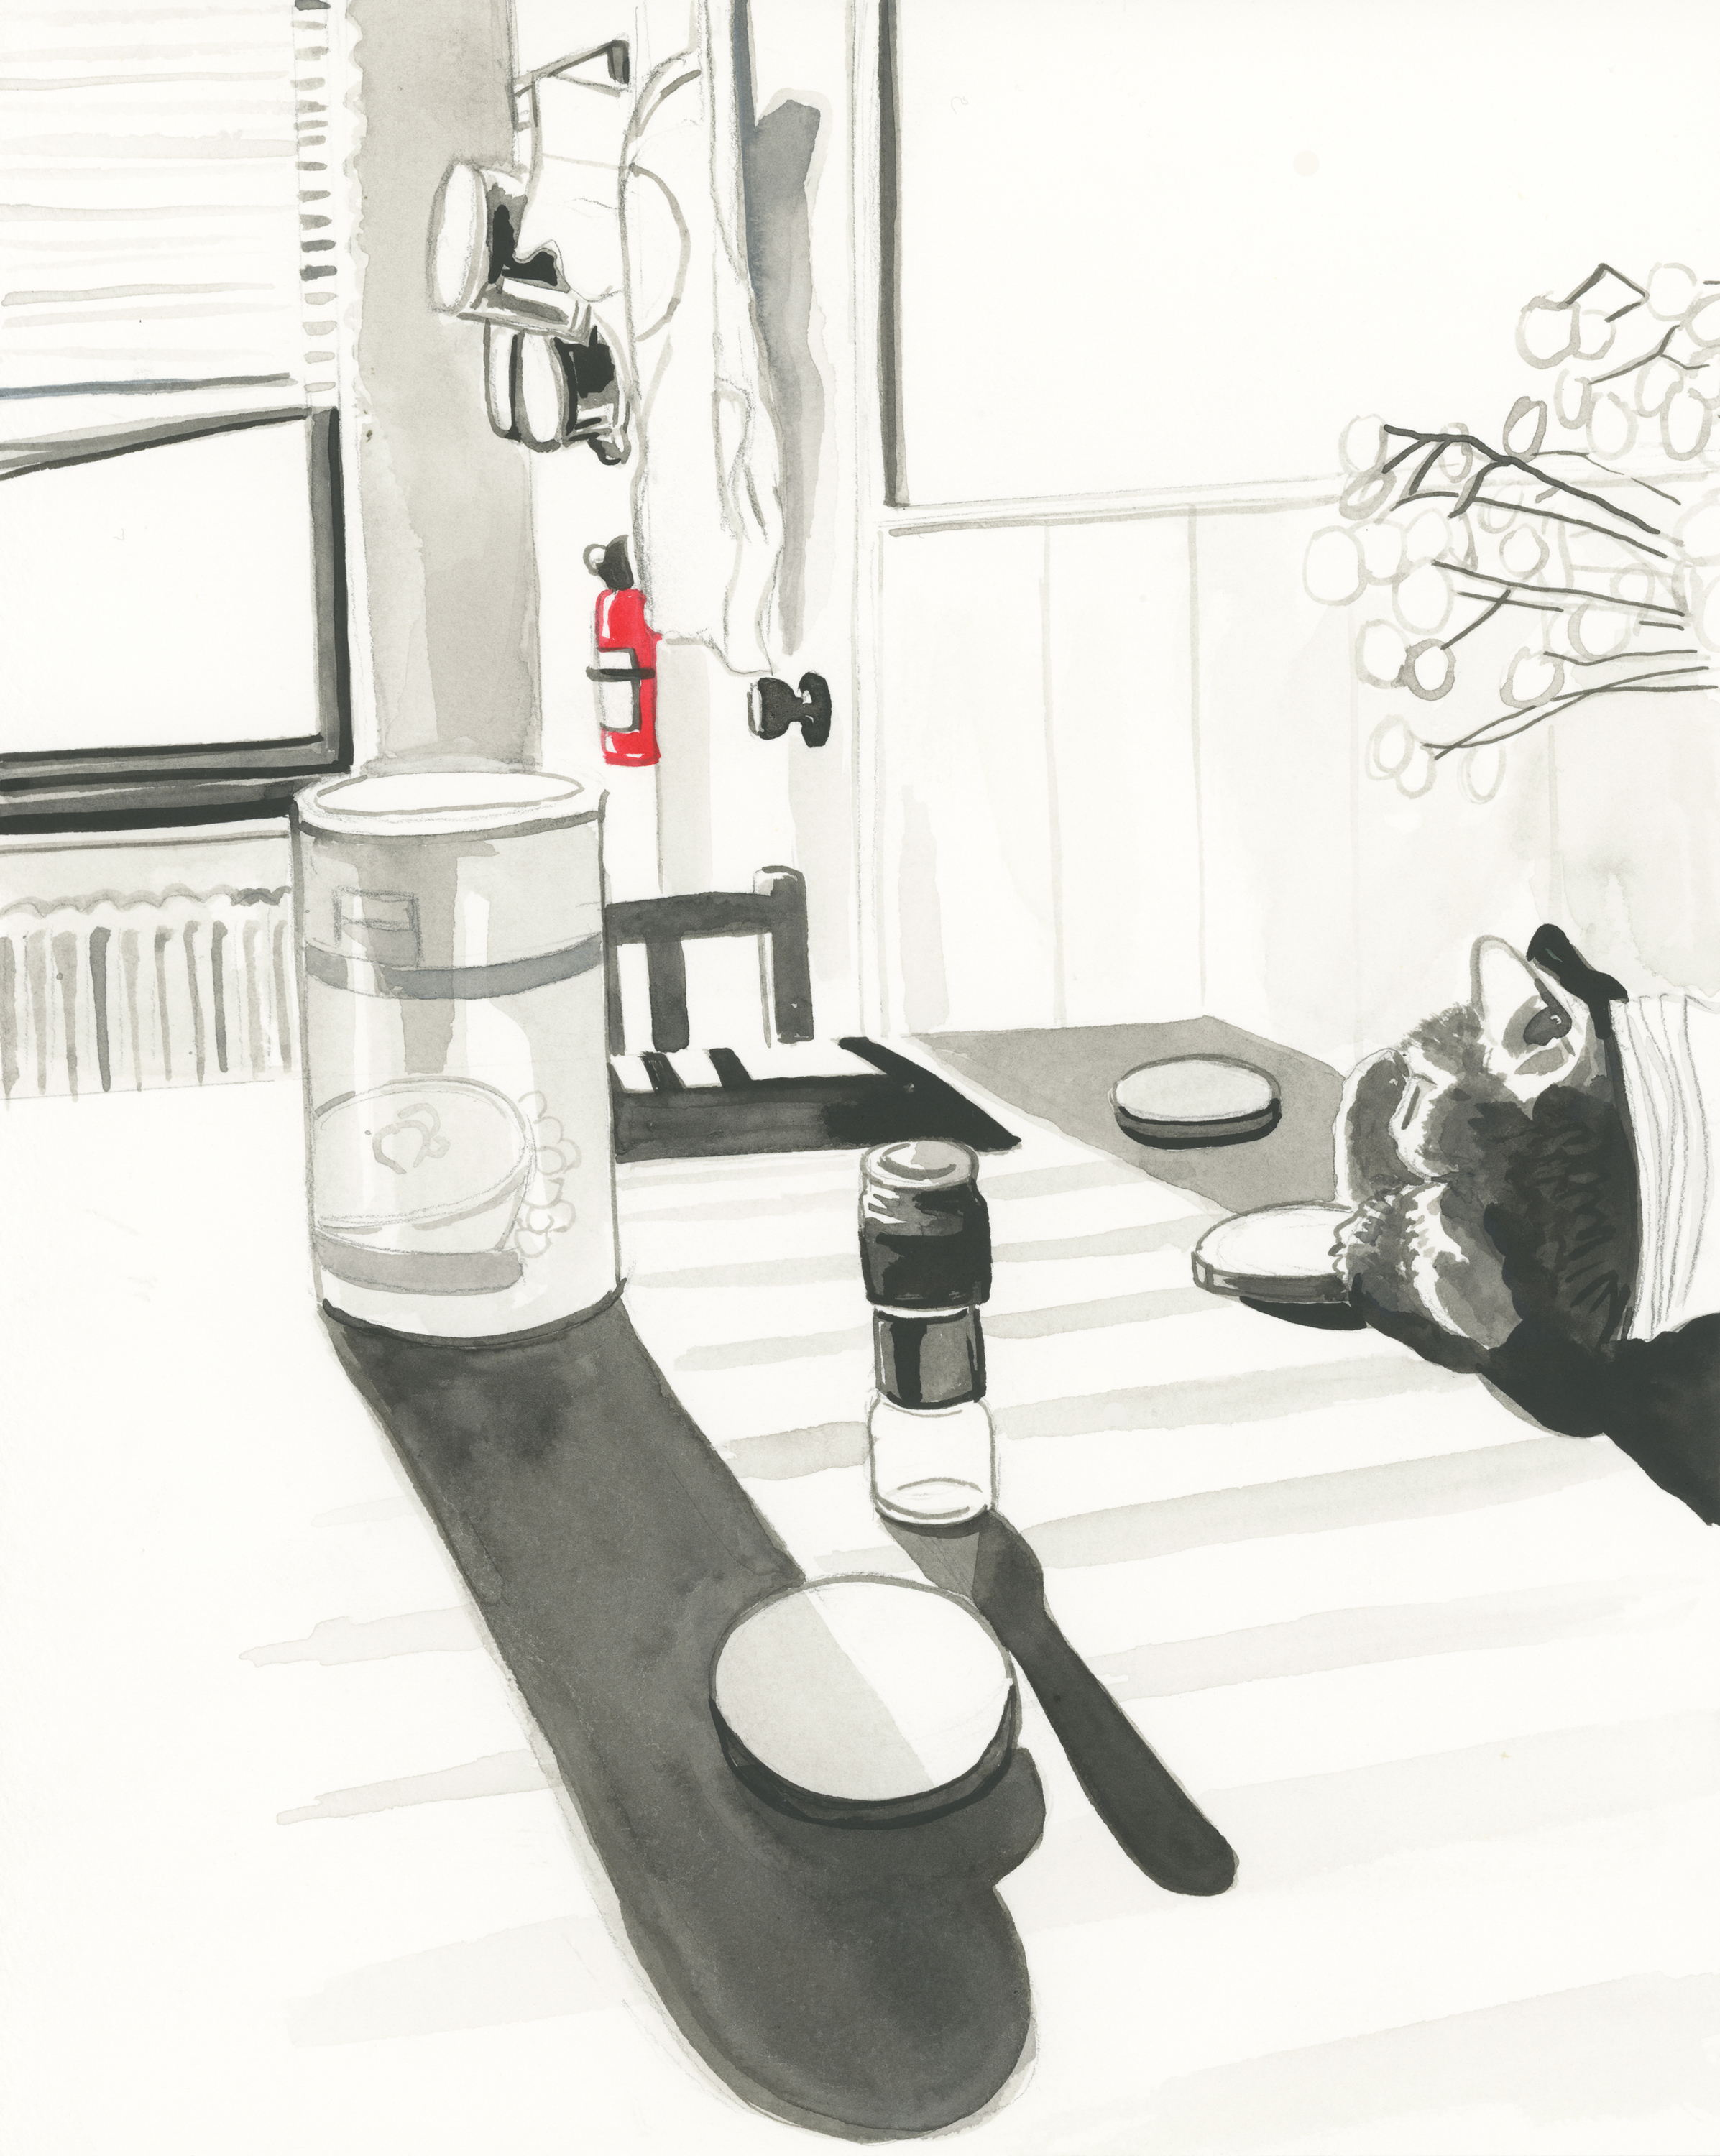 Kitchen table drawing mary younkin wetpaintnyc gallery bq85rq